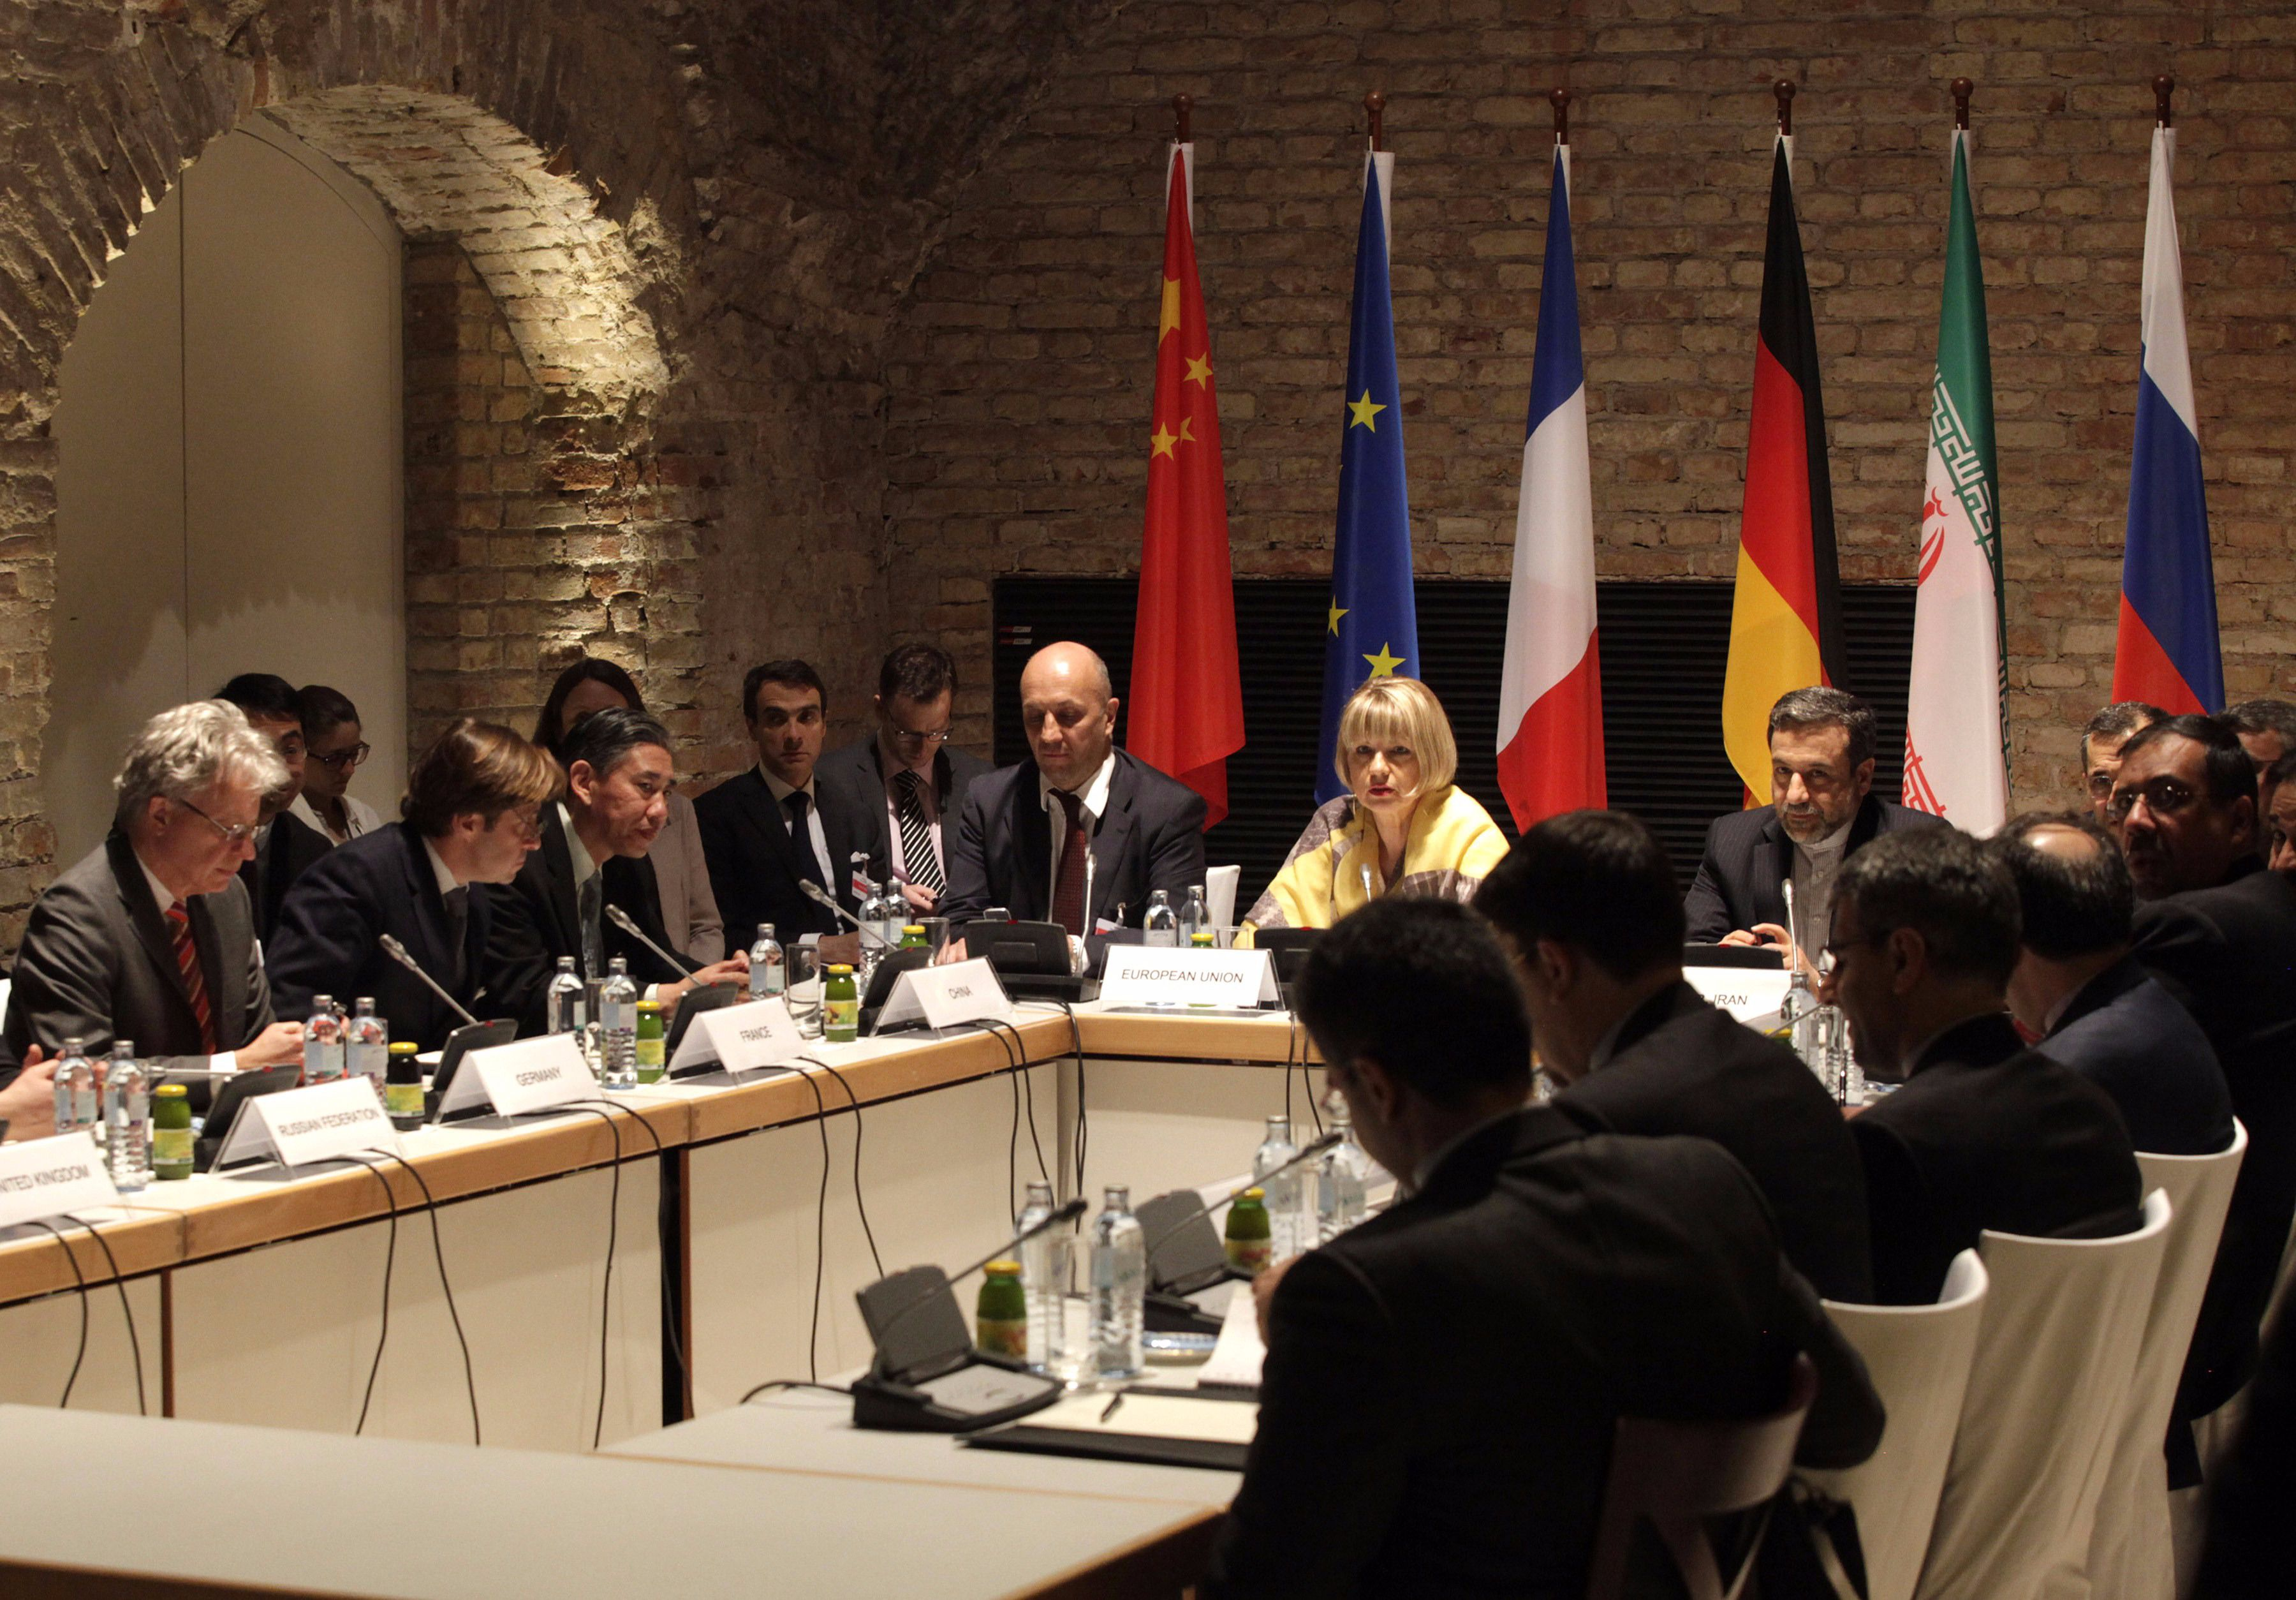 Representatives meet in Vienna to attempt to reach an agreement over Iran's nuclear program.